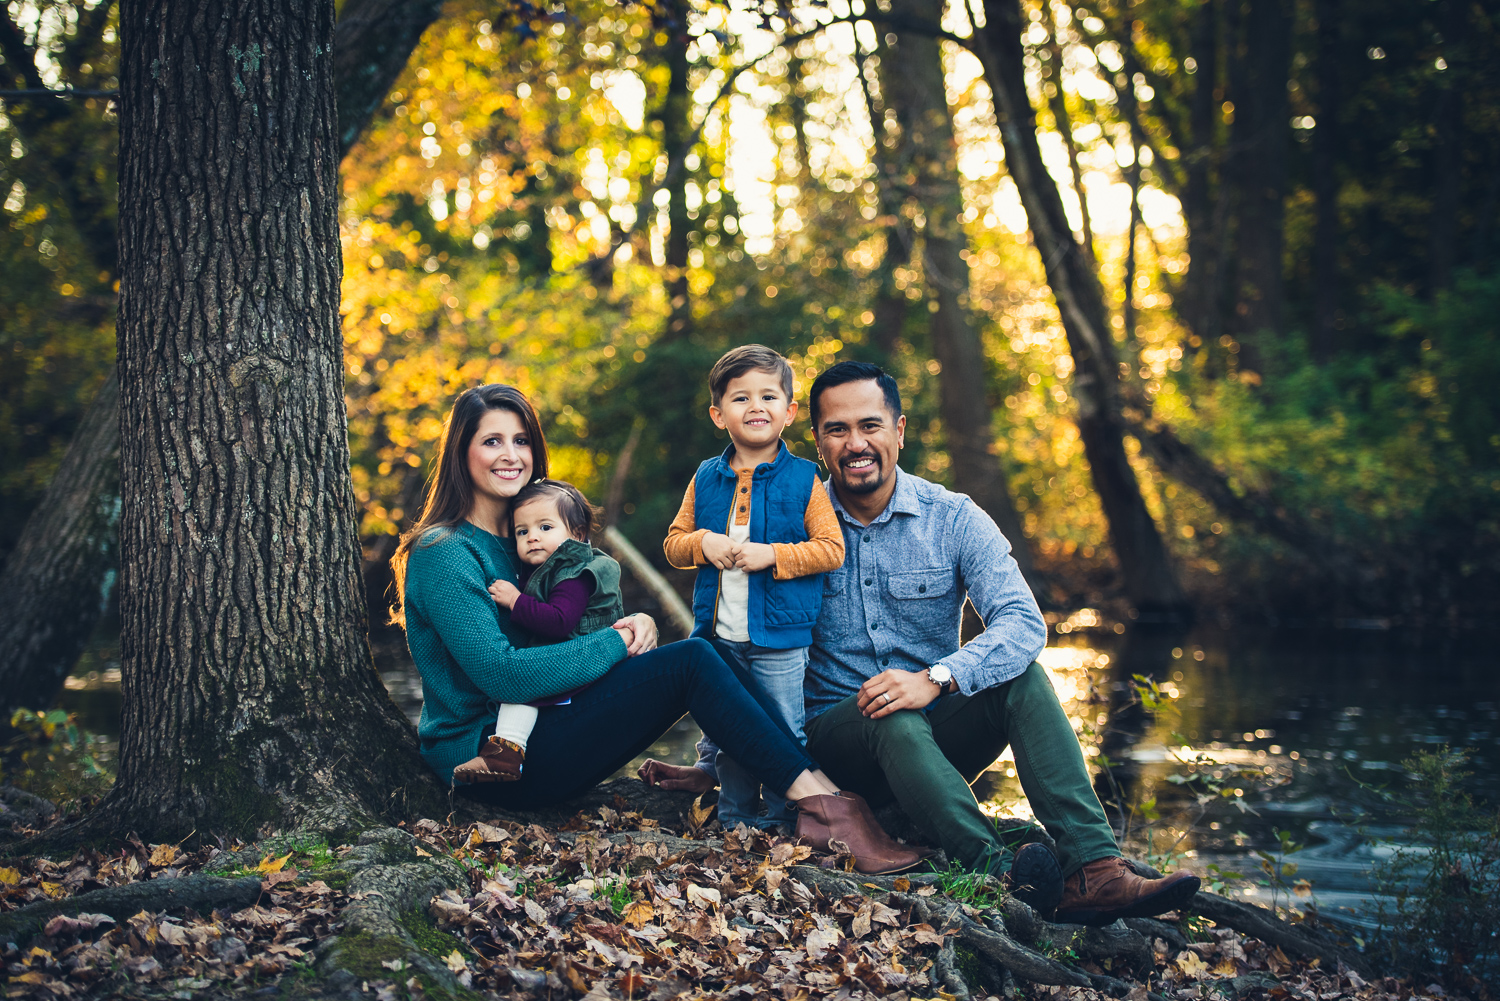 20181111 - Michelle Philip Family Shoot LR-13.jpg